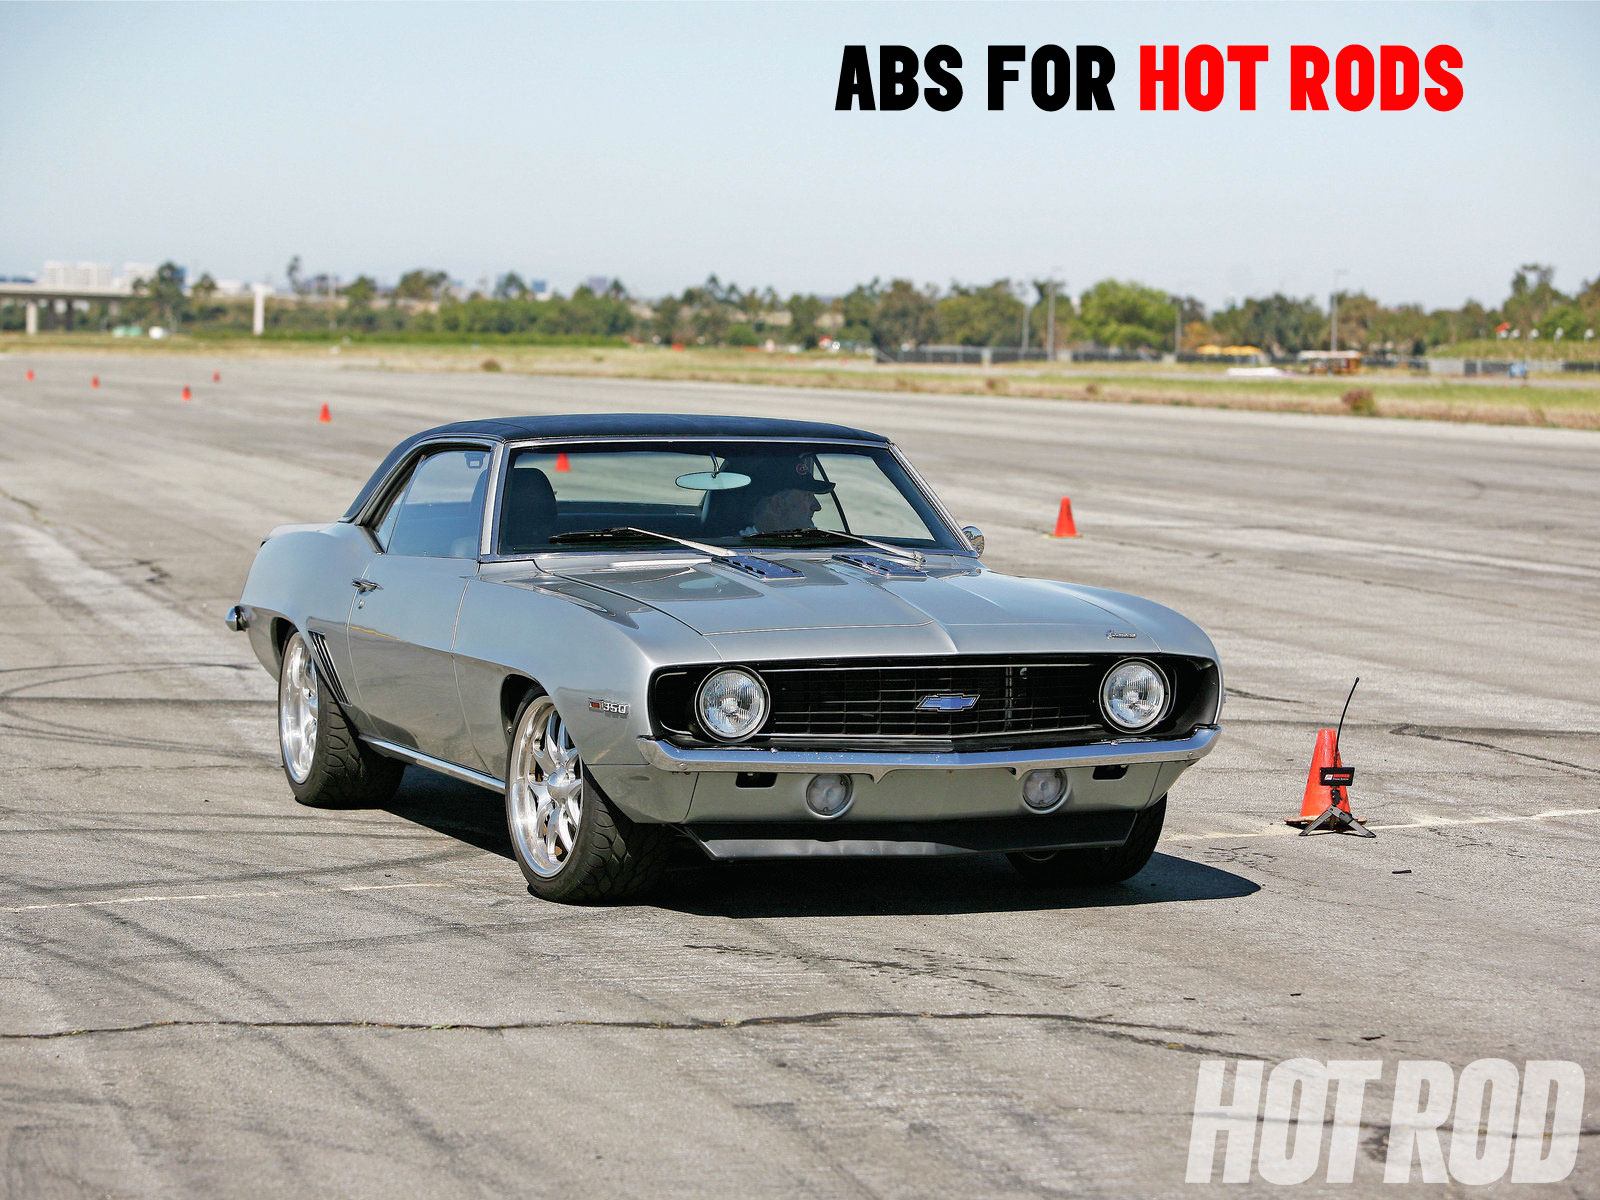 hight resolution of hrdp 1108 abs for hot rods promo